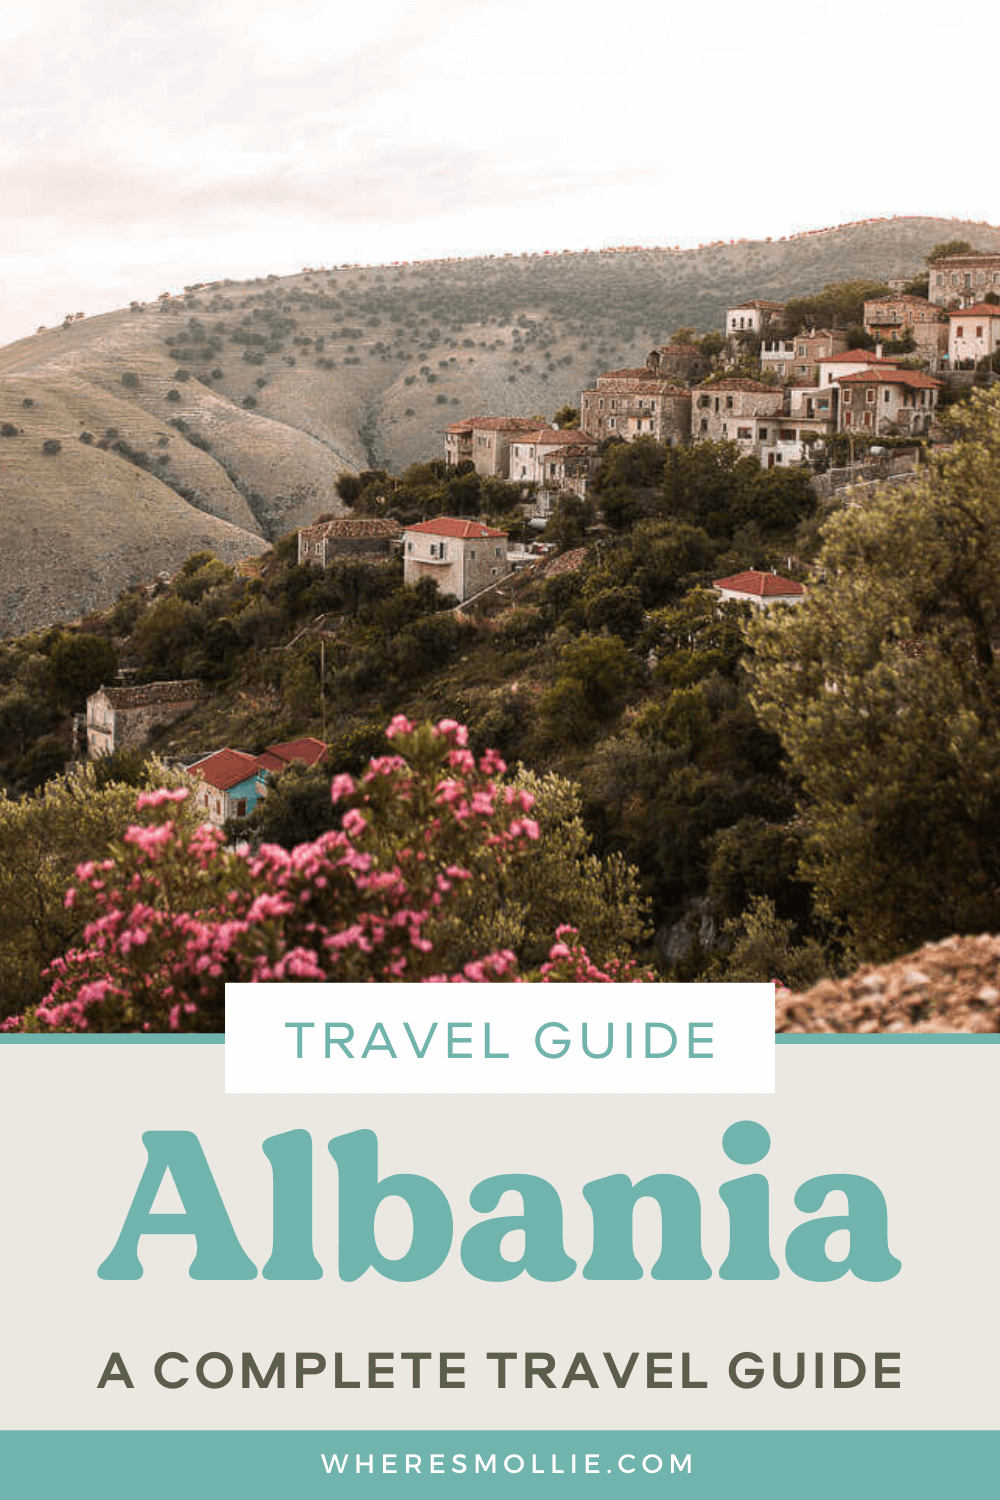 A complete guide to travelling in Albania